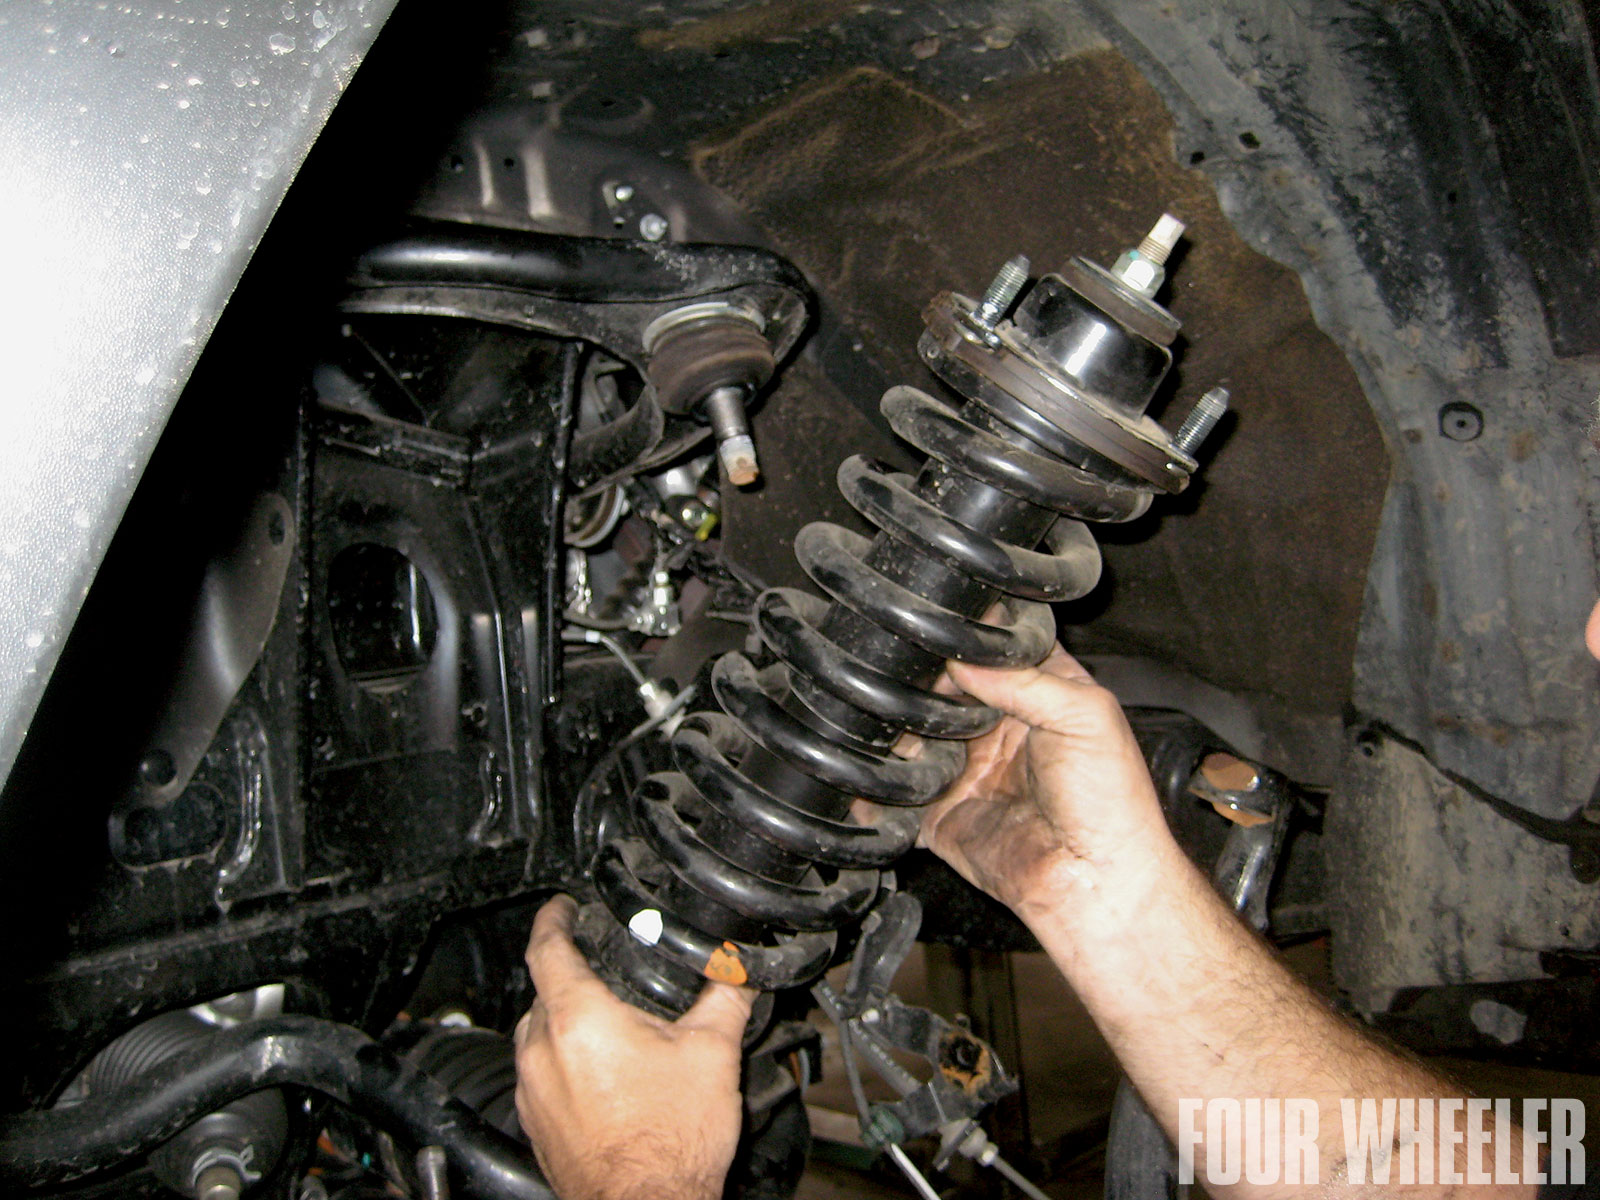 129 1102 06 o+129 1102 project 4runner backcountry part 2+factory coil on shock removal